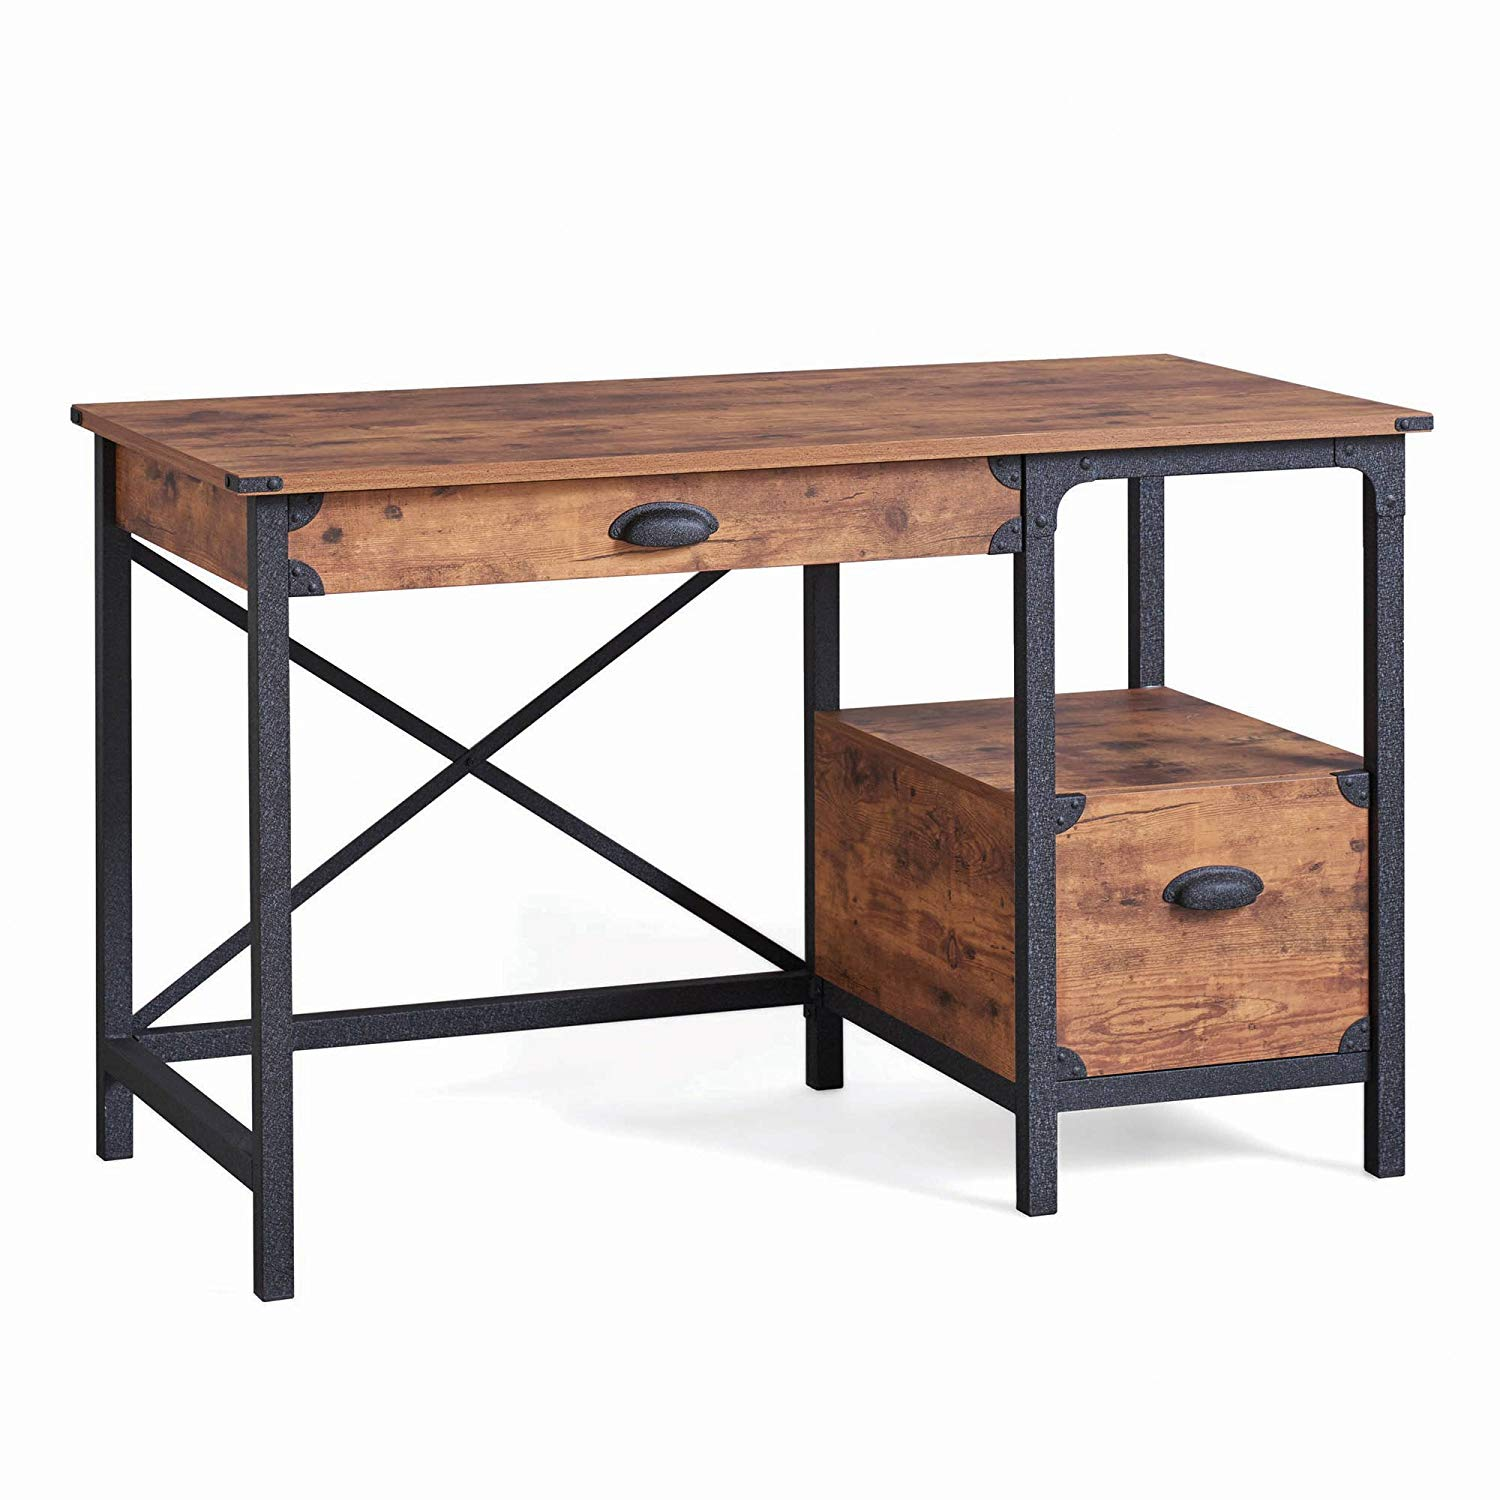 Rustic Country Desk, Weathered Pine Finish, 2 Drawers, Metal Runners, Safety Stops, Open Shelf, Made from Engineered Wood, Bundle with Our Expert Guide with Tips for Home Arrangement